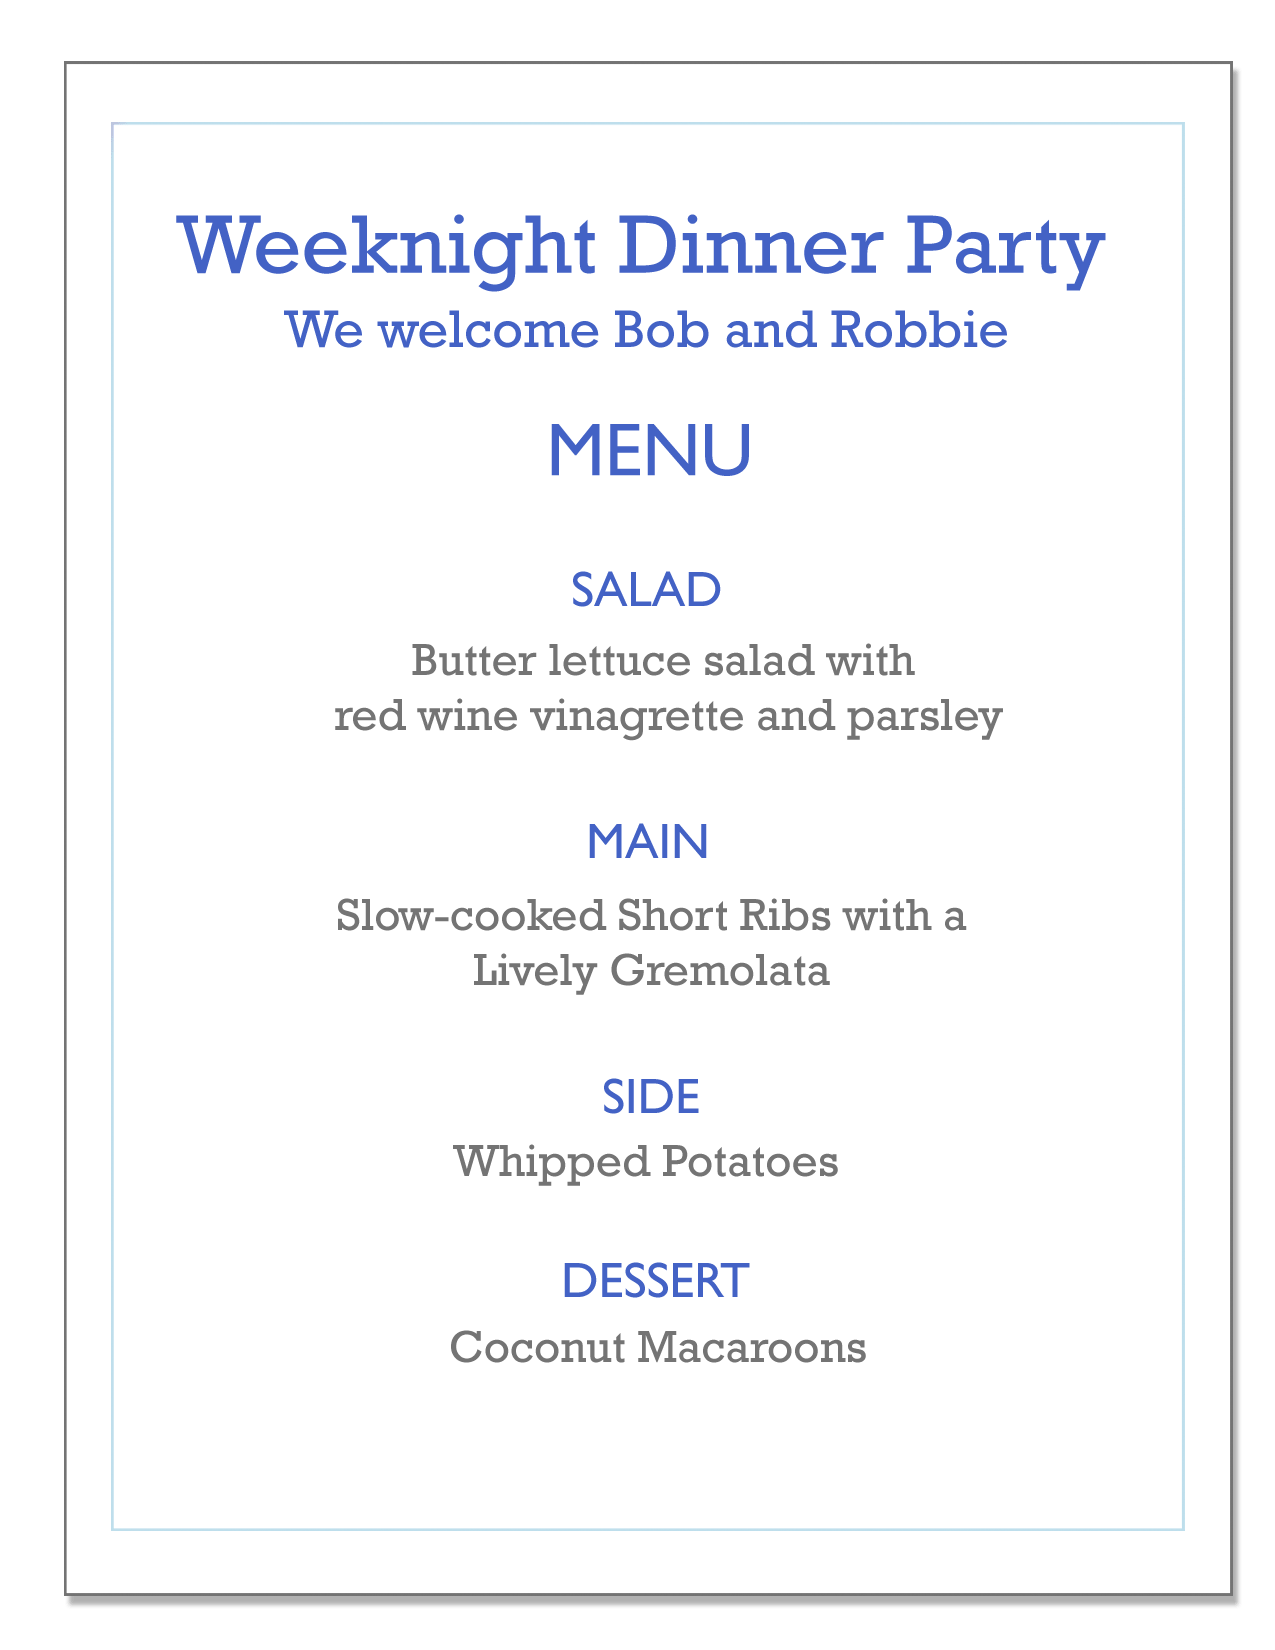 Weeknight Dinner Party Menu Including Short Ribs With Gremolata, Butter  Lettuce Salad, Whipped Potatoes